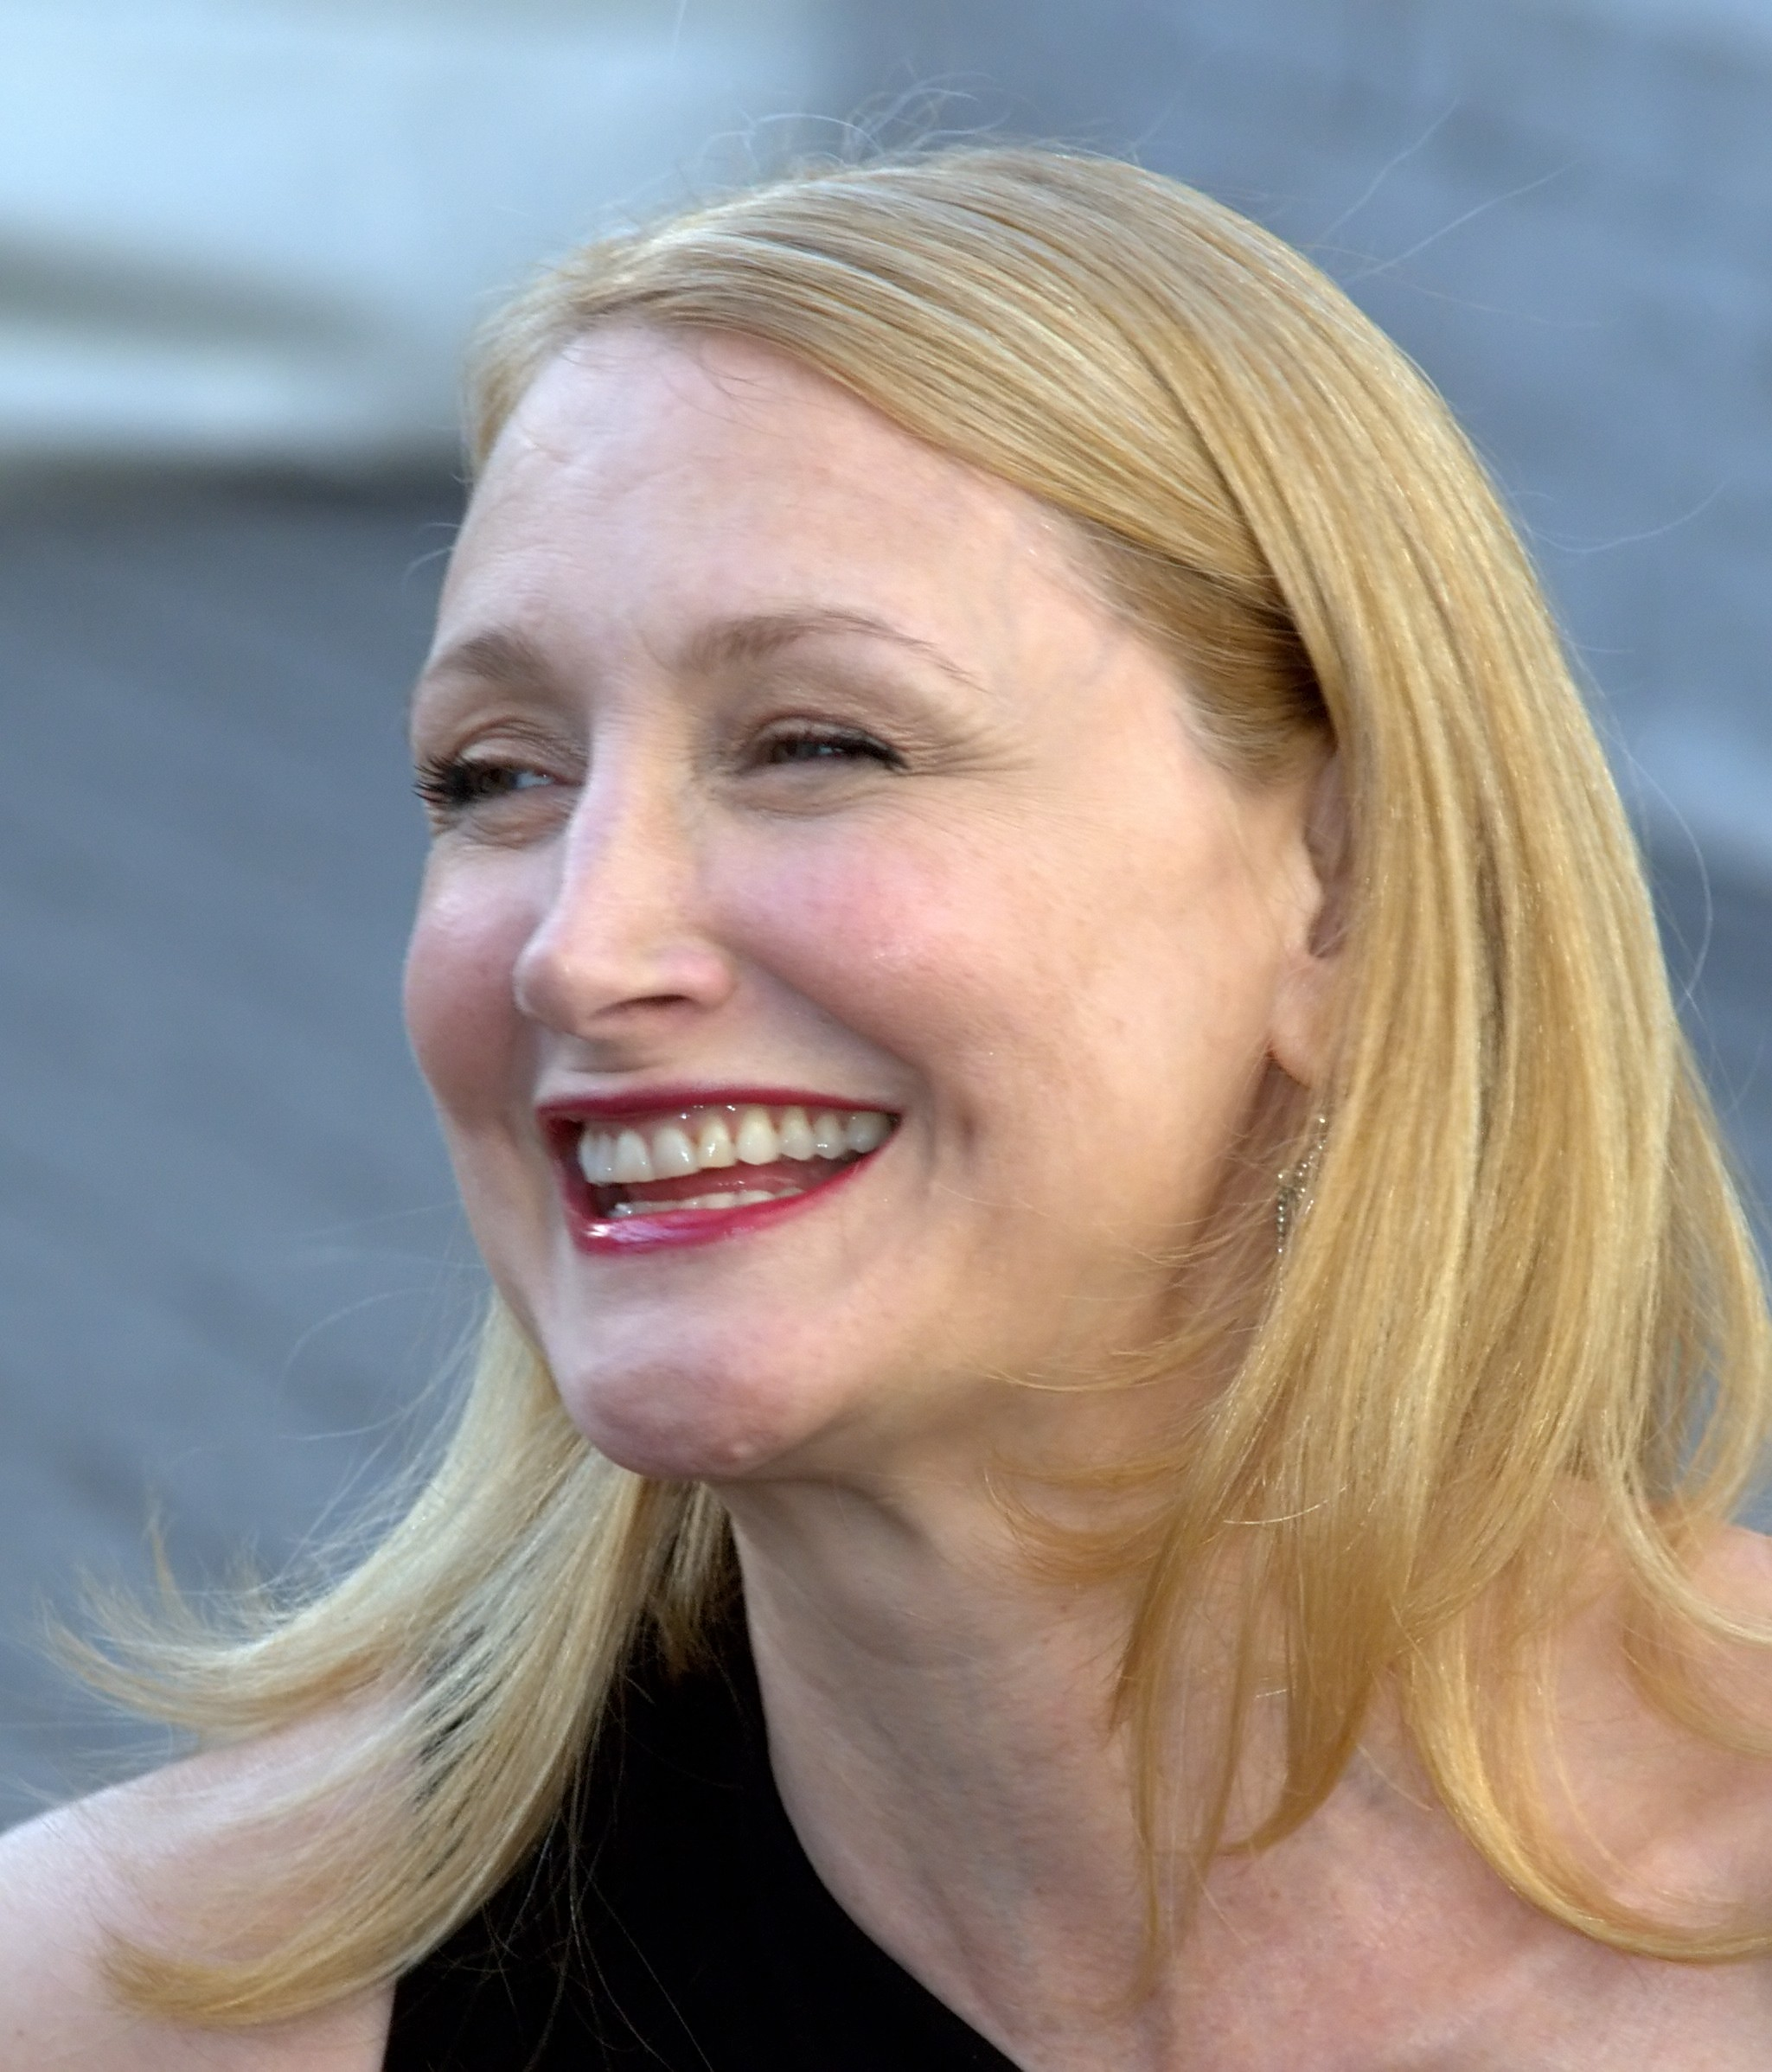 patricia clarkson images - HD2049×2396